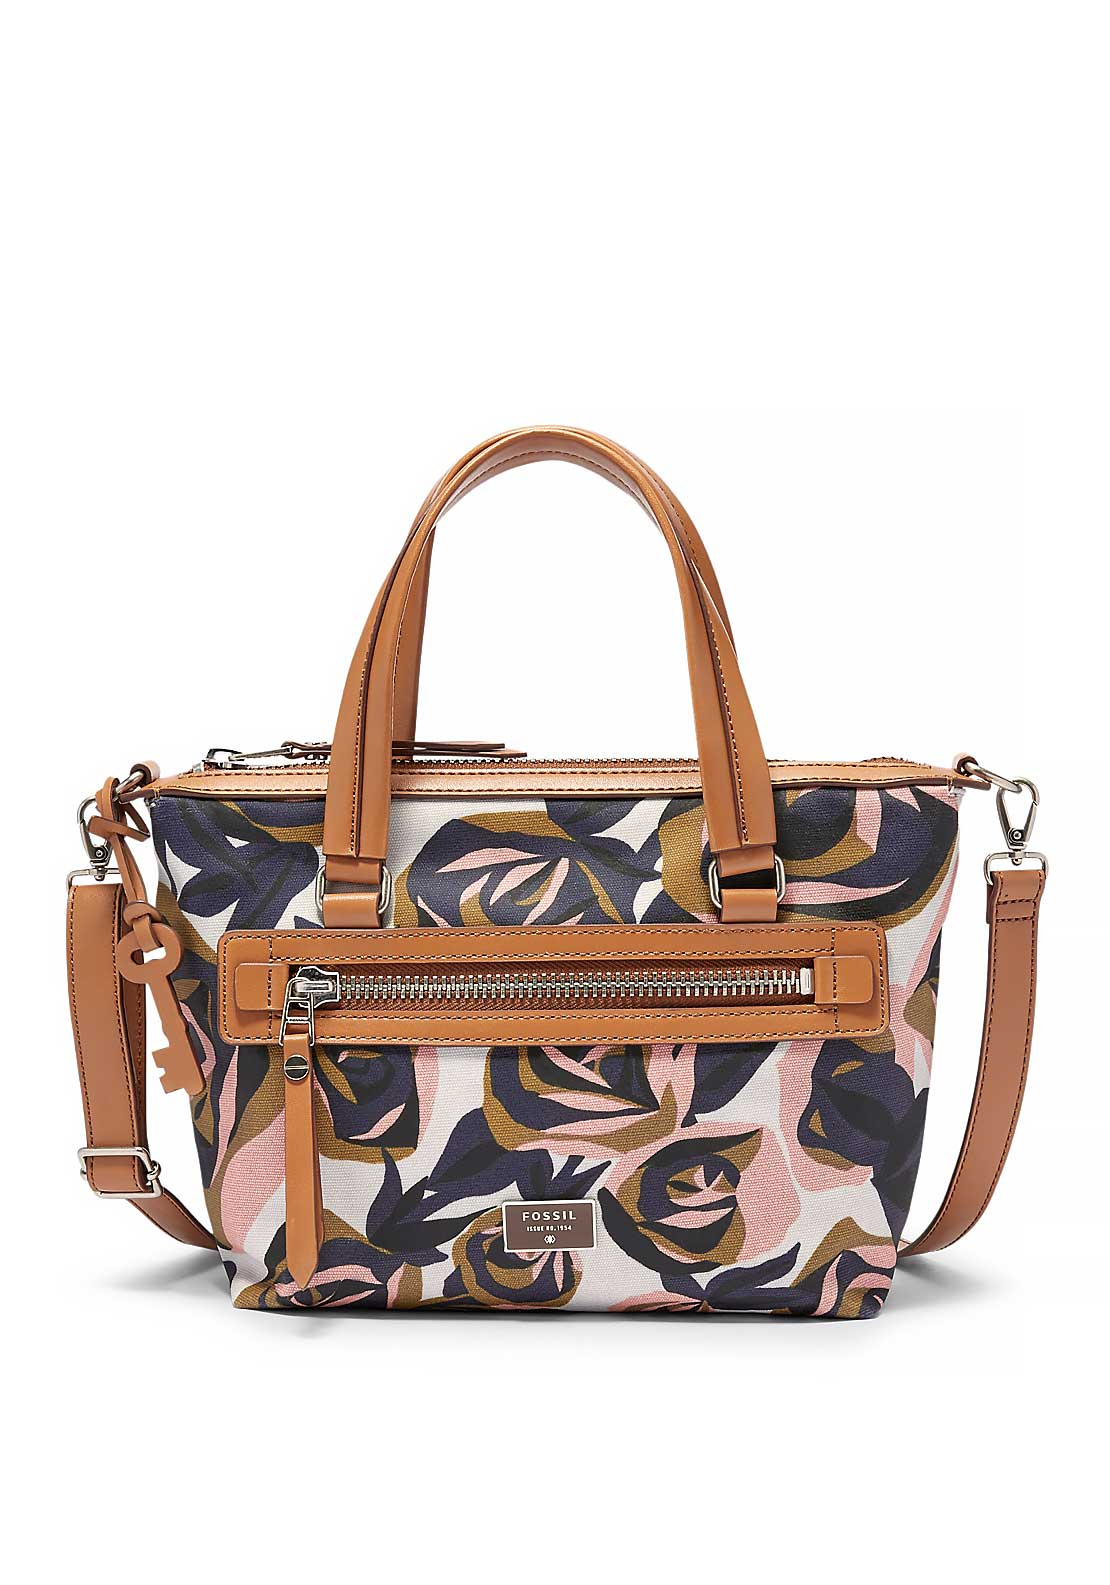 Fossil Dawson Floral Satchel Bag, Multi-Coloured